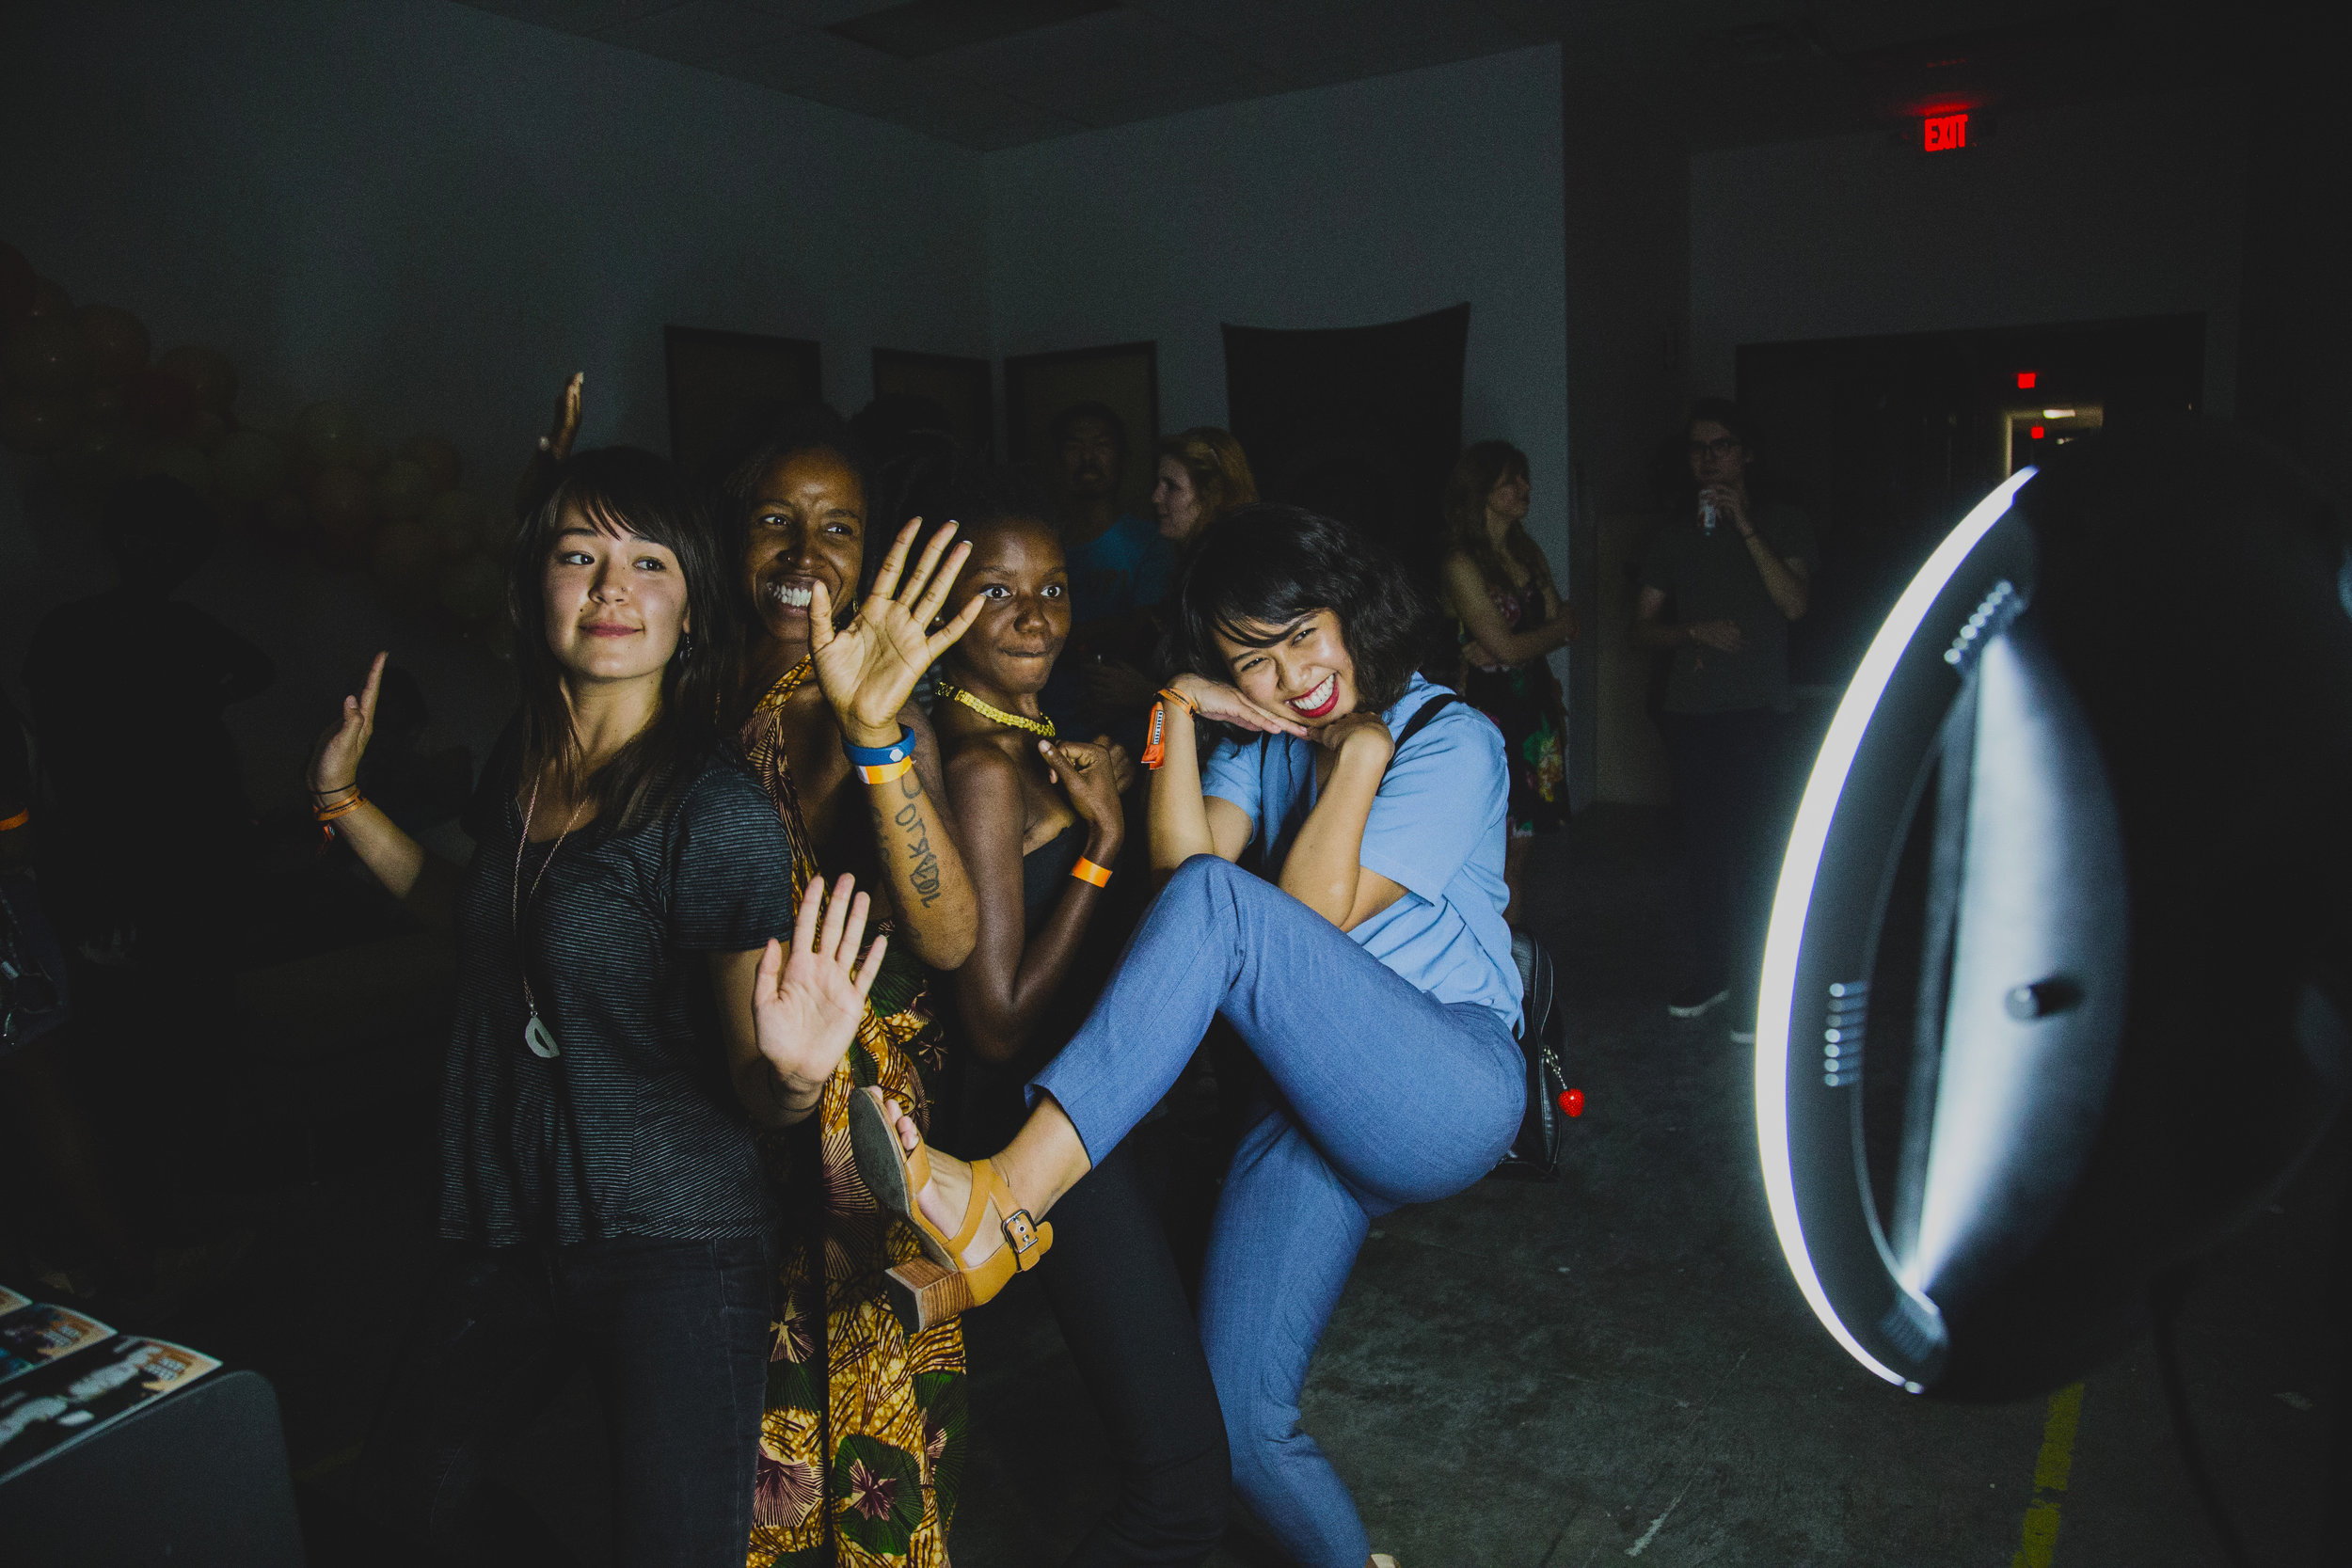 BABESFEST 2017 - Best photo I've probably ever taken of some of the best women I've ever met—shout out to FemBeat and Counter Balance ATX.